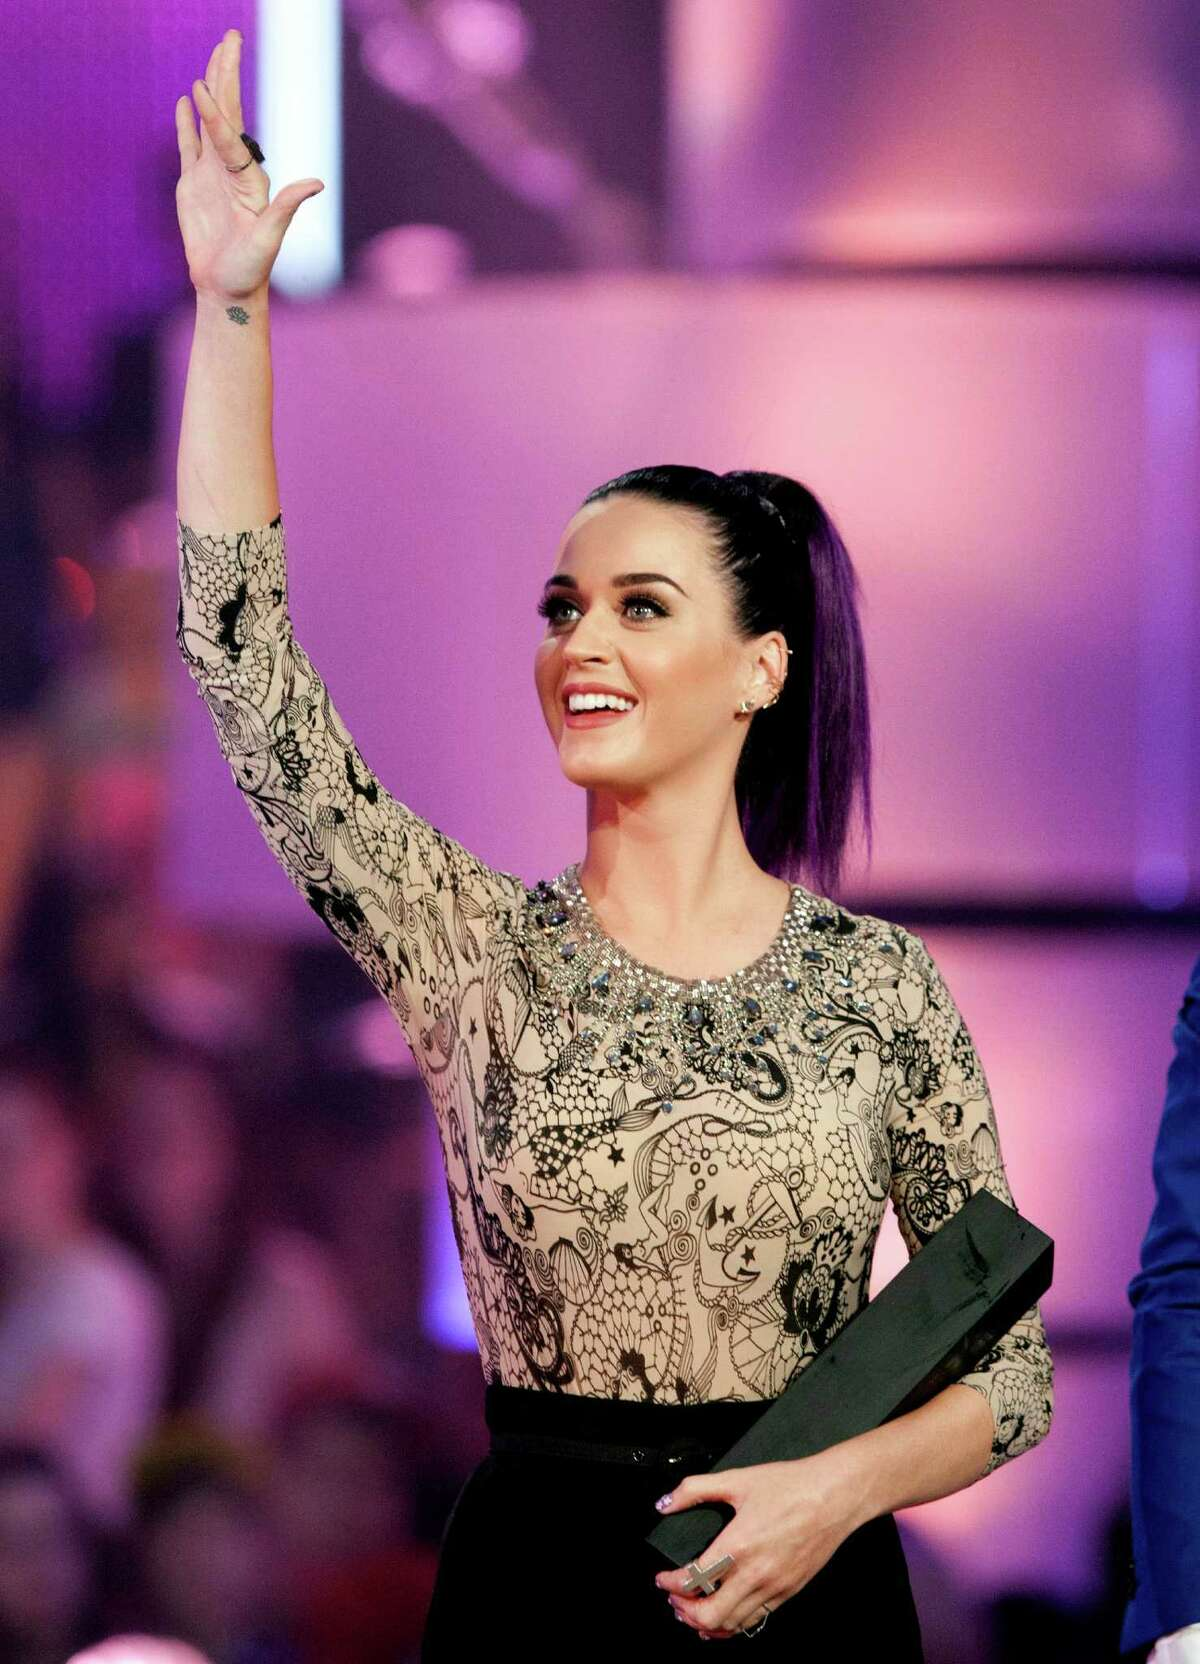 Katy Perry waves after receiving her award for Best International Video during the 2012 MuchMusic Video Awards in Toronto on Sunday (AP Photo/The Canadian Press, Chris Young)